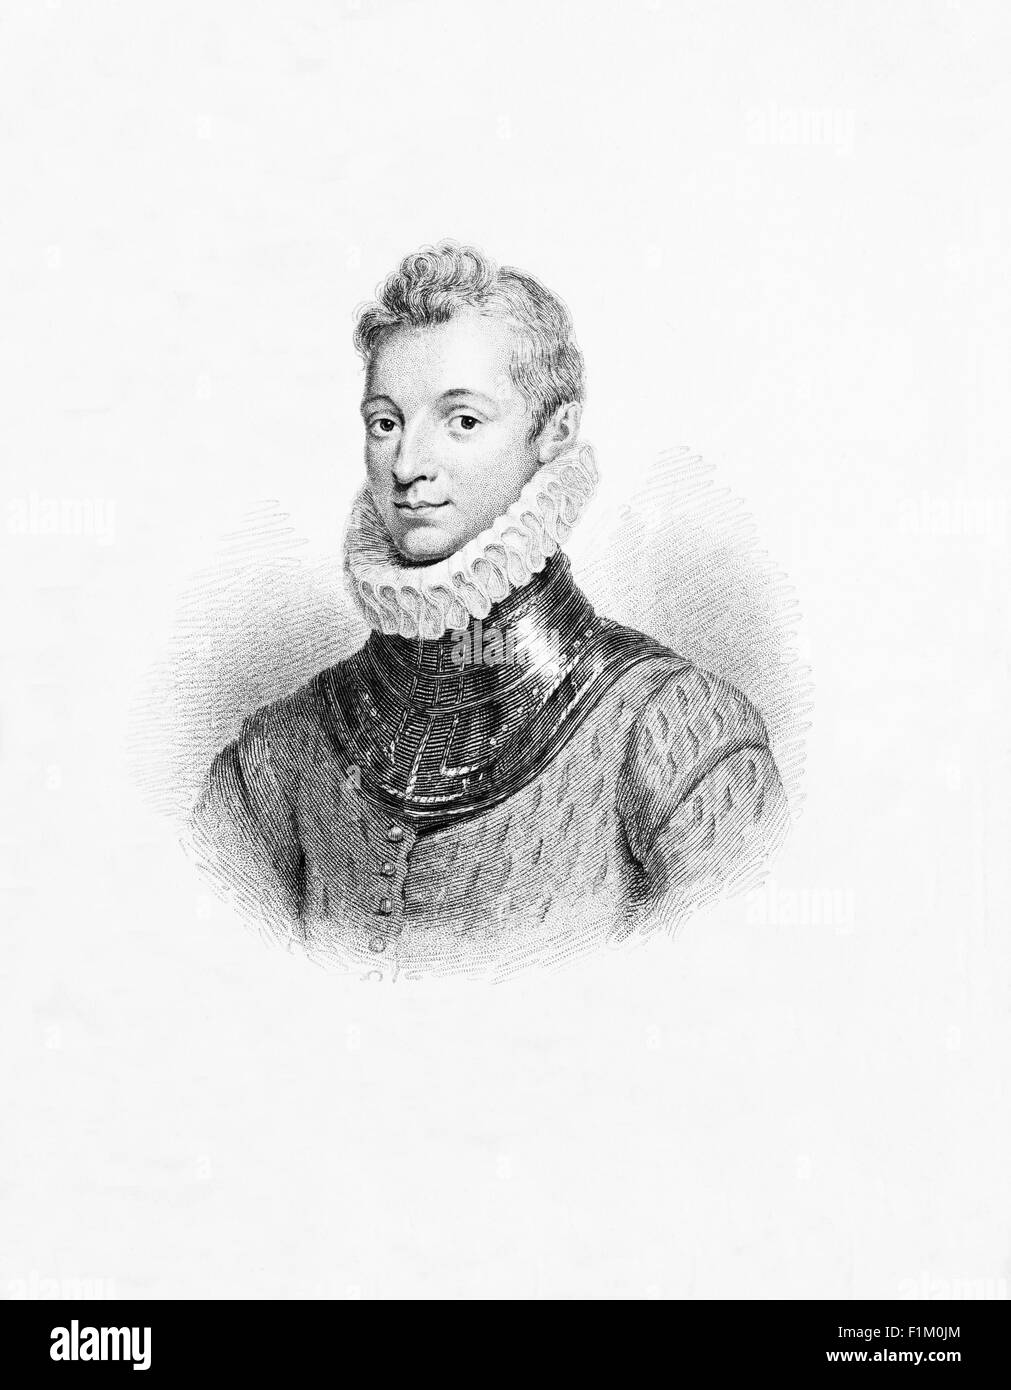 Sir Philip Sidney (1554 – 1586) an English poet, courtier and soldier, Remembered as one of the most prominent figures - Stock Image